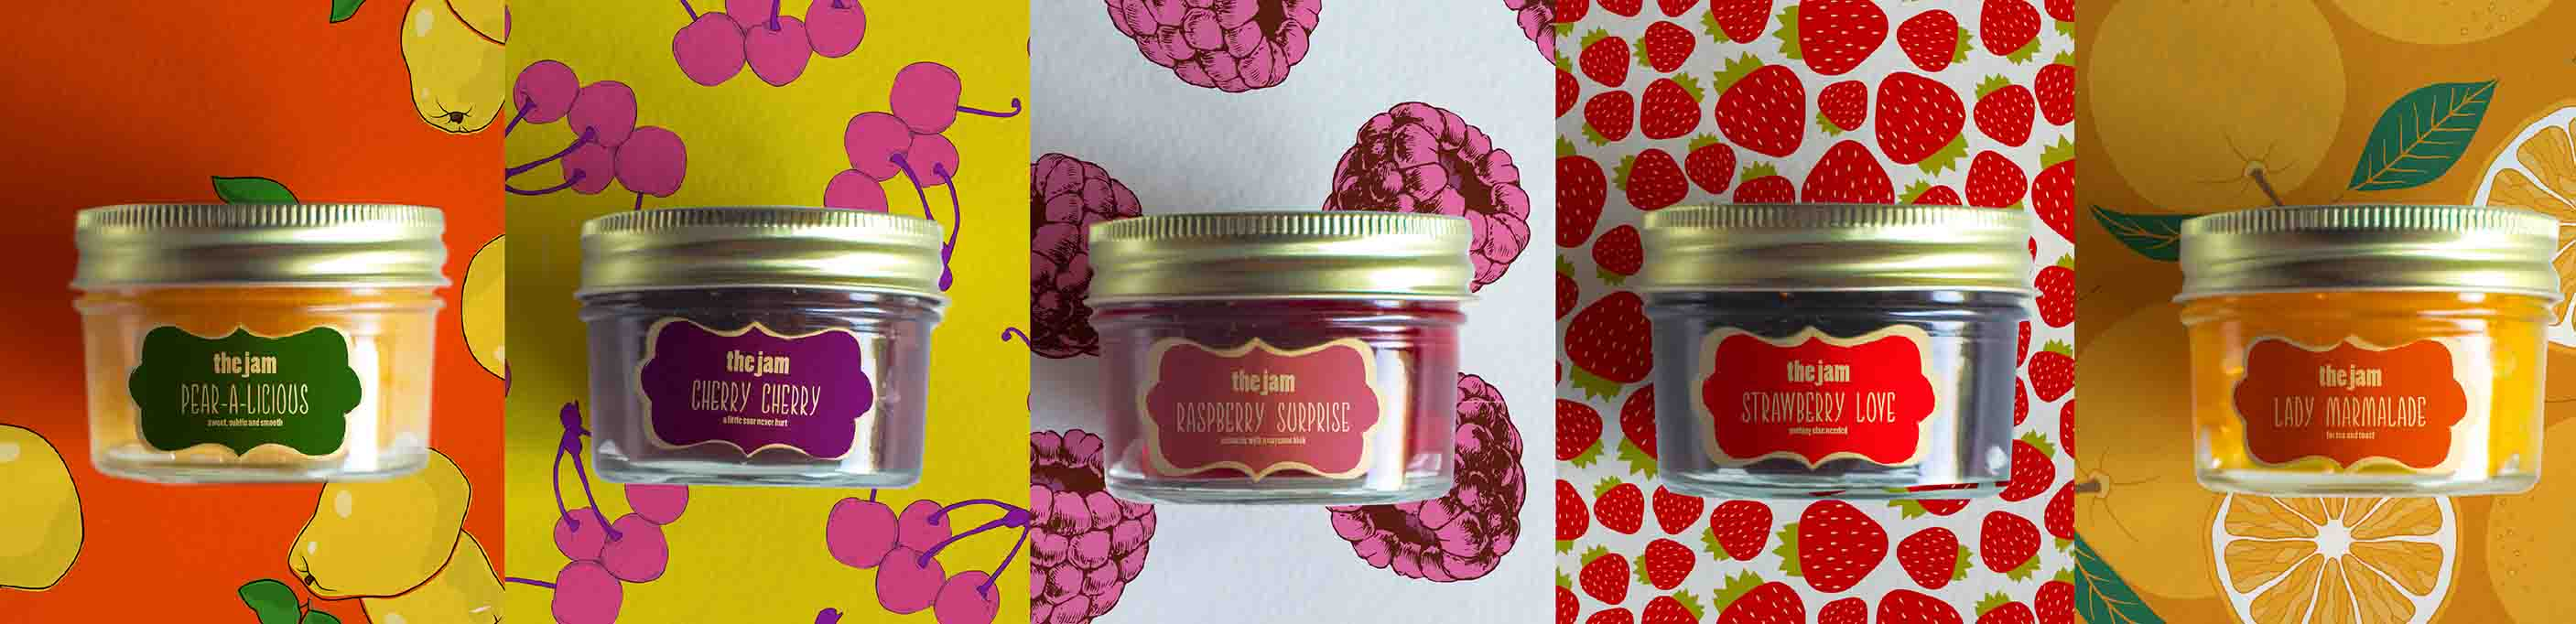 Jelly and Jam Jars - 53